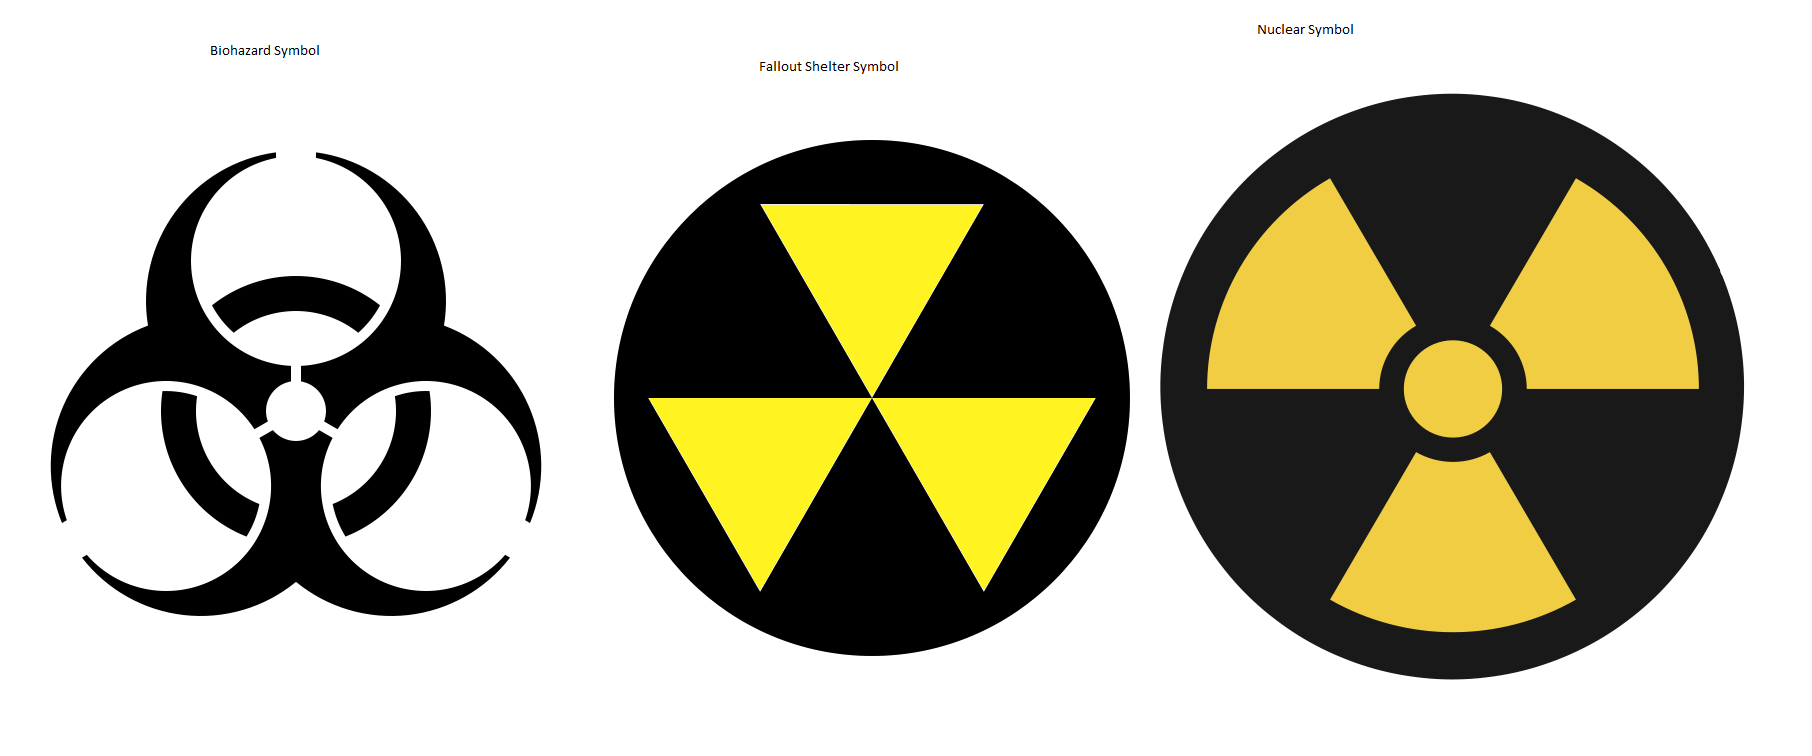 Apocalypse energy drink symbols by kaioth on deviantart apocalypse energy drink symbols by kaioth apocalypse energy drink symbols by kaioth buycottarizona Choice Image